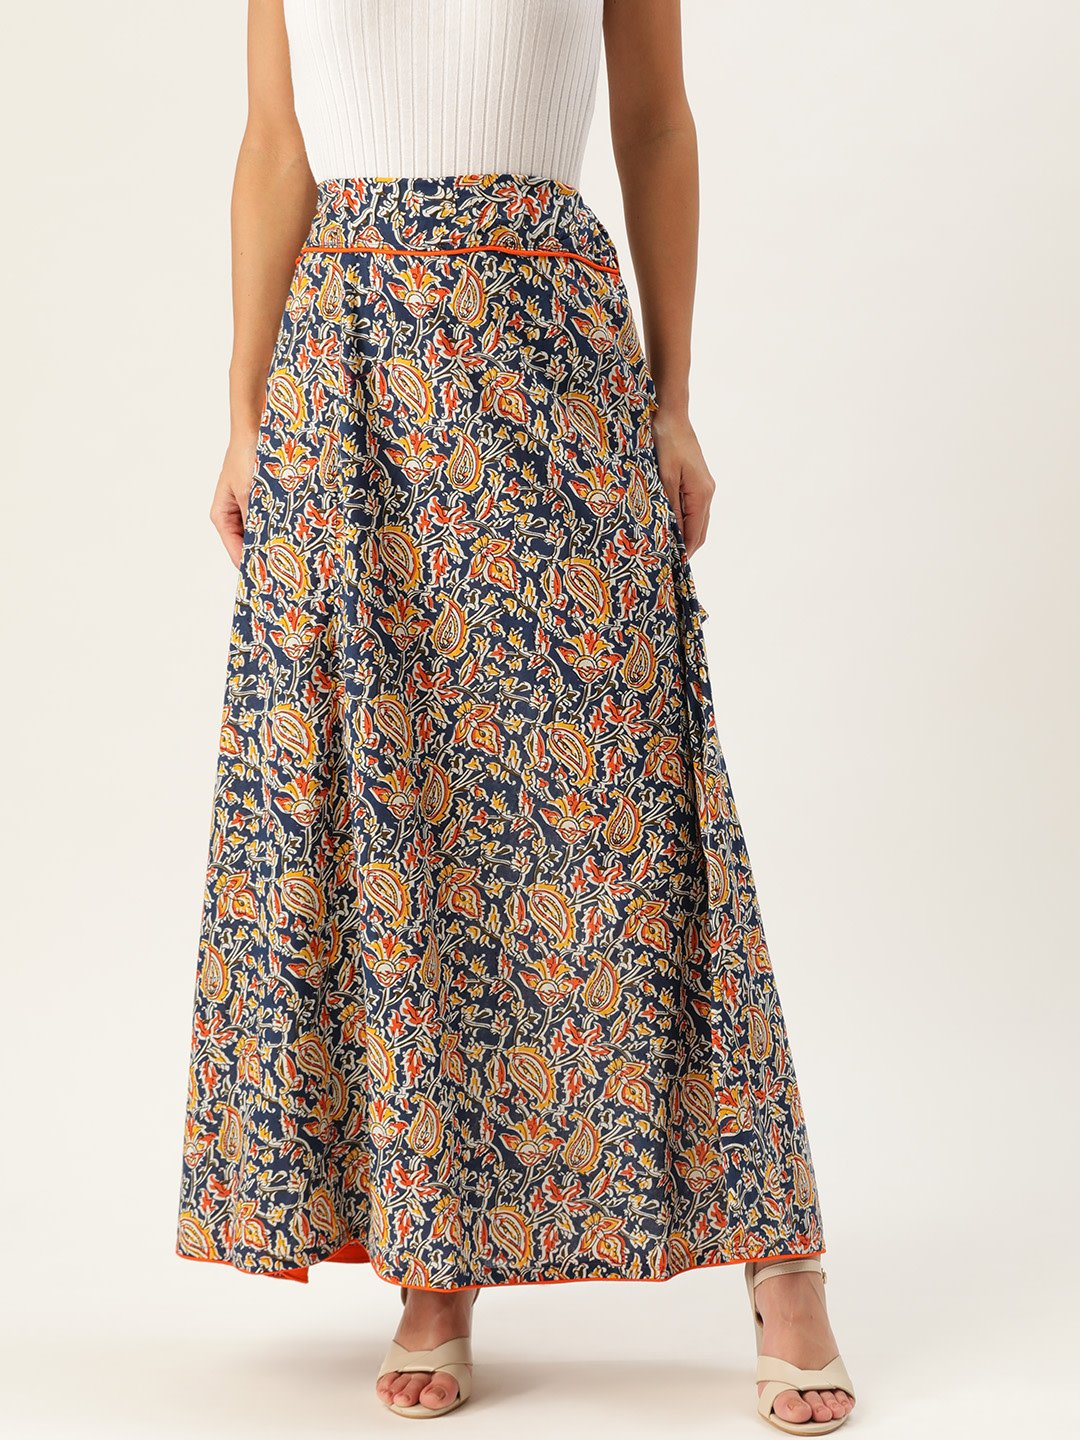 BLUE KALAMKARI SKIRT